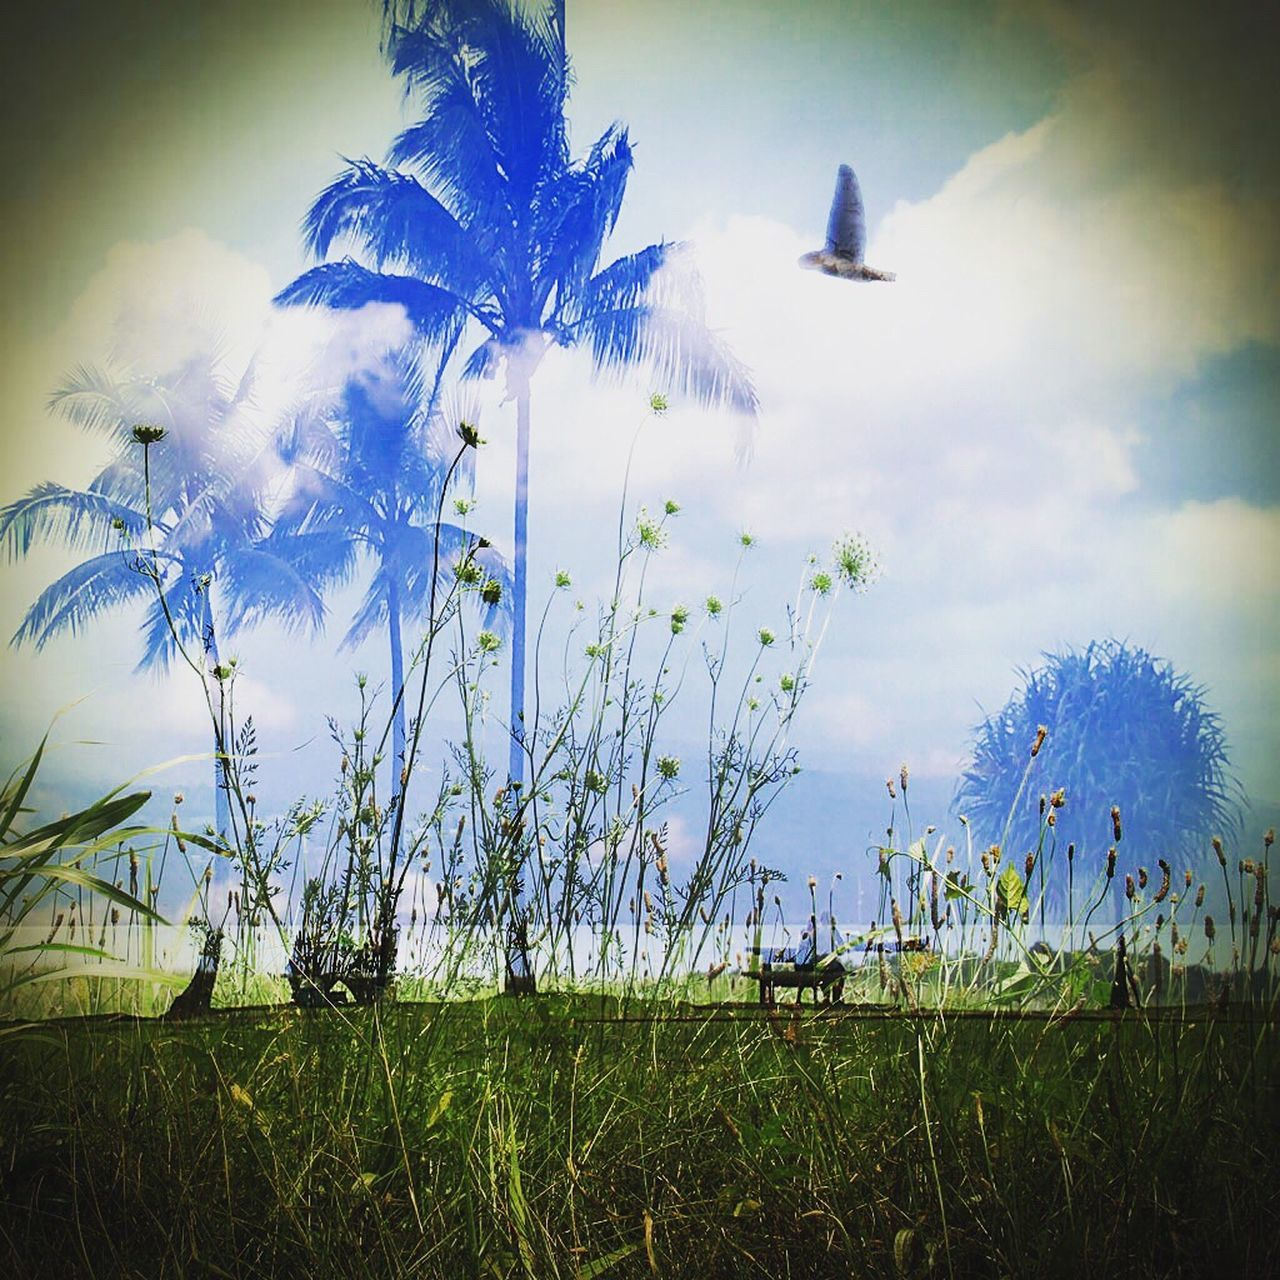 Cut And Paste Nature Beauty In Nature Outdoors Landscape Sky Birds Palm Trees Trees Trees And Sky Tranquil Scene Superimpose Seaside